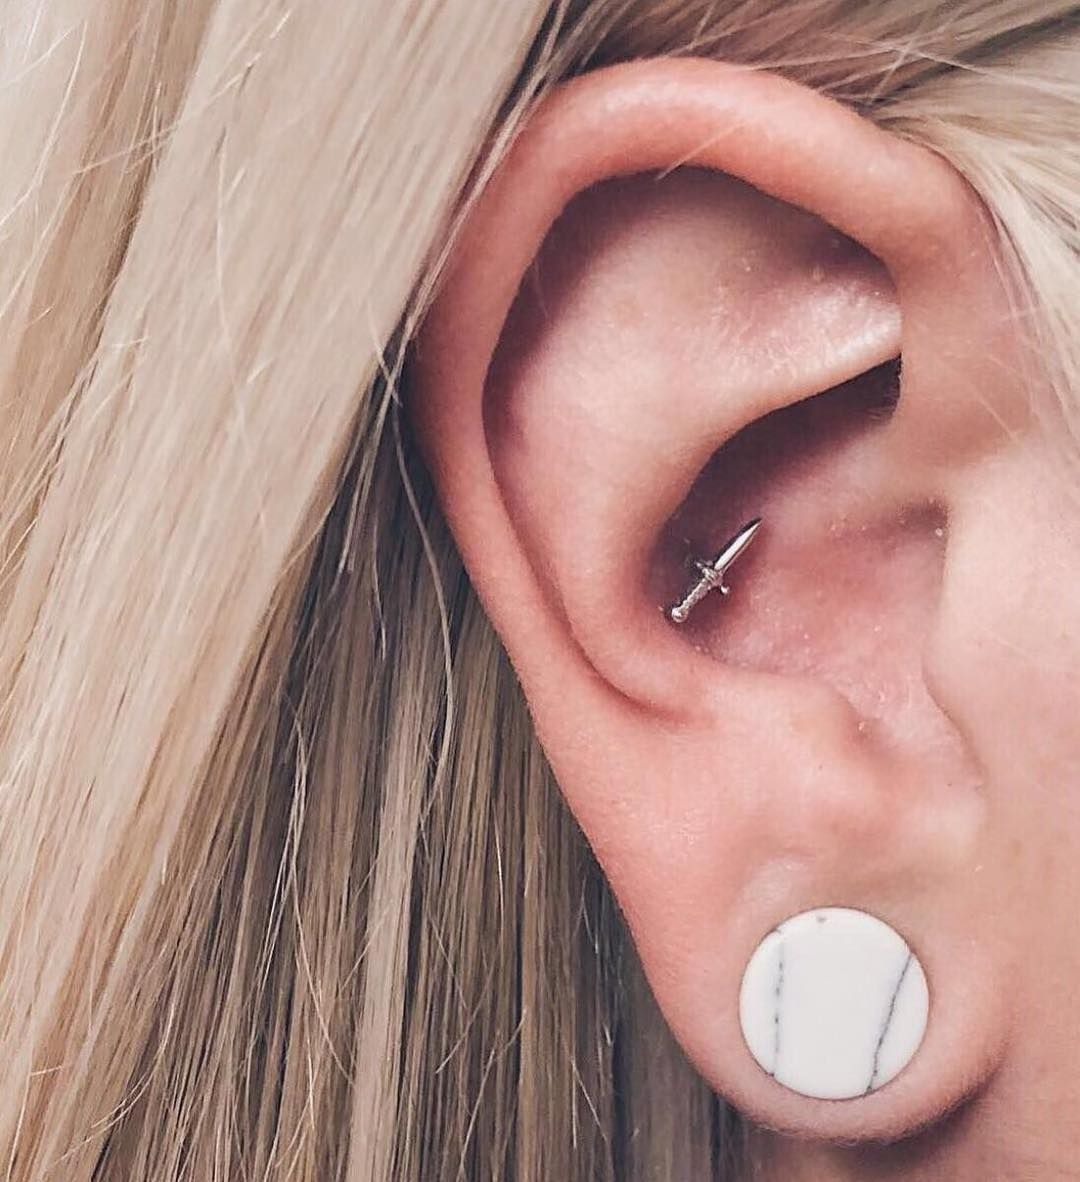 Conch Piercing By Gina Lillygee7 Featuring The Bvla Dagger Done